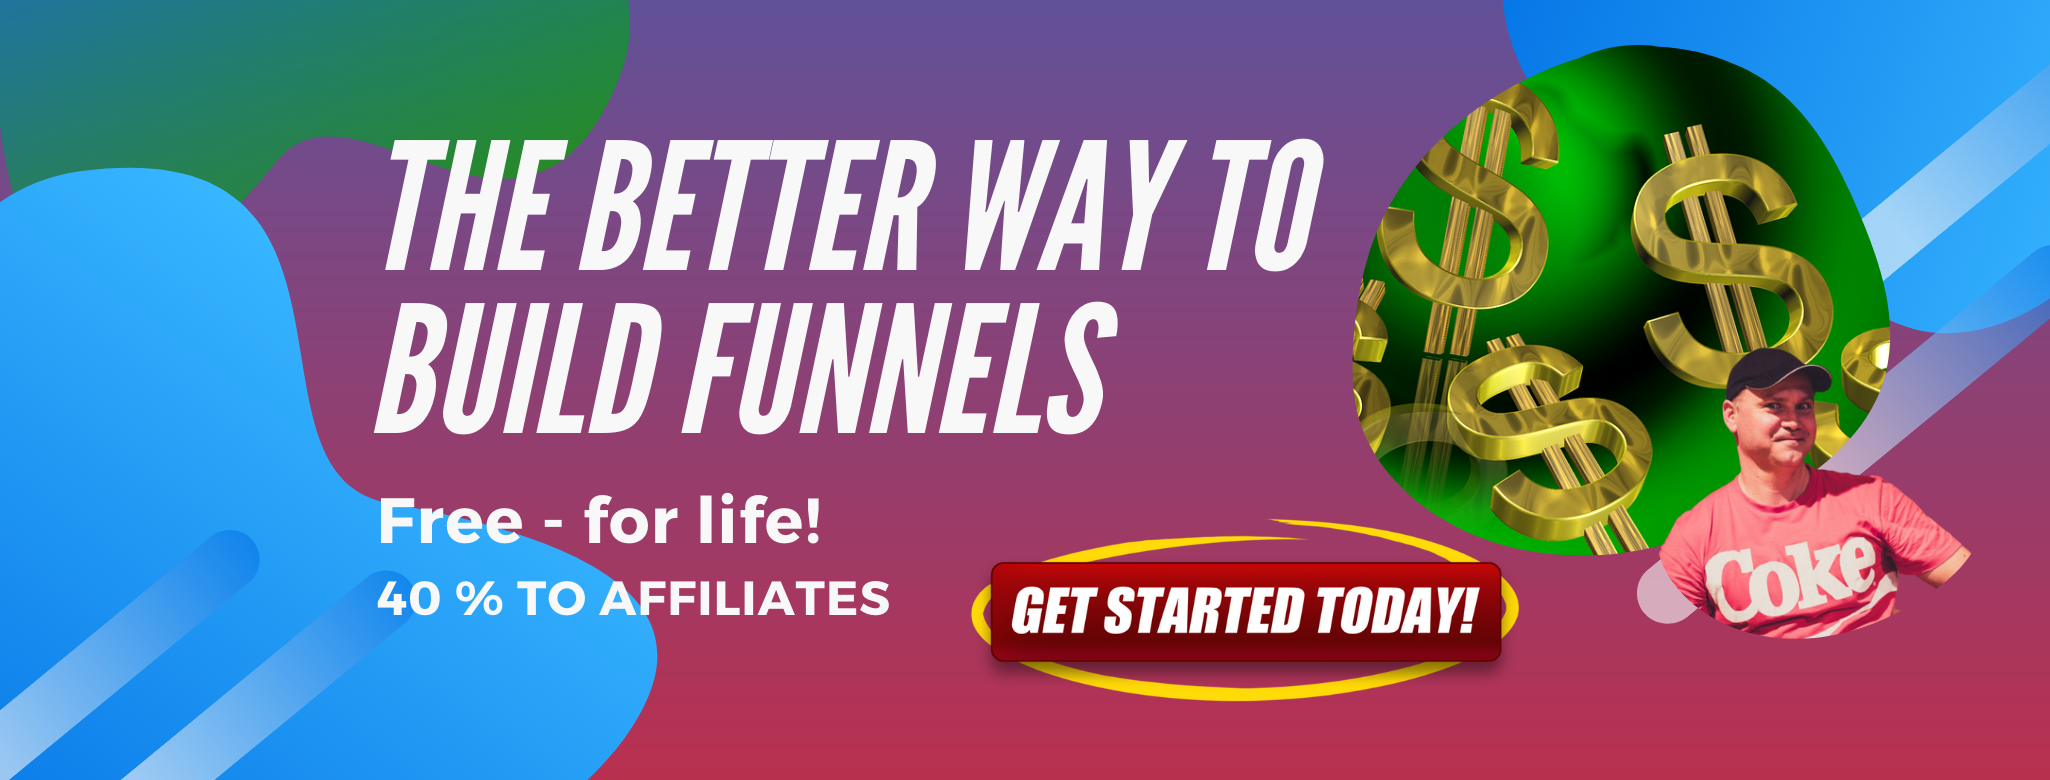 GROOVEFUNNELS - THE BETTER WAY TO BUILD FUNNELS